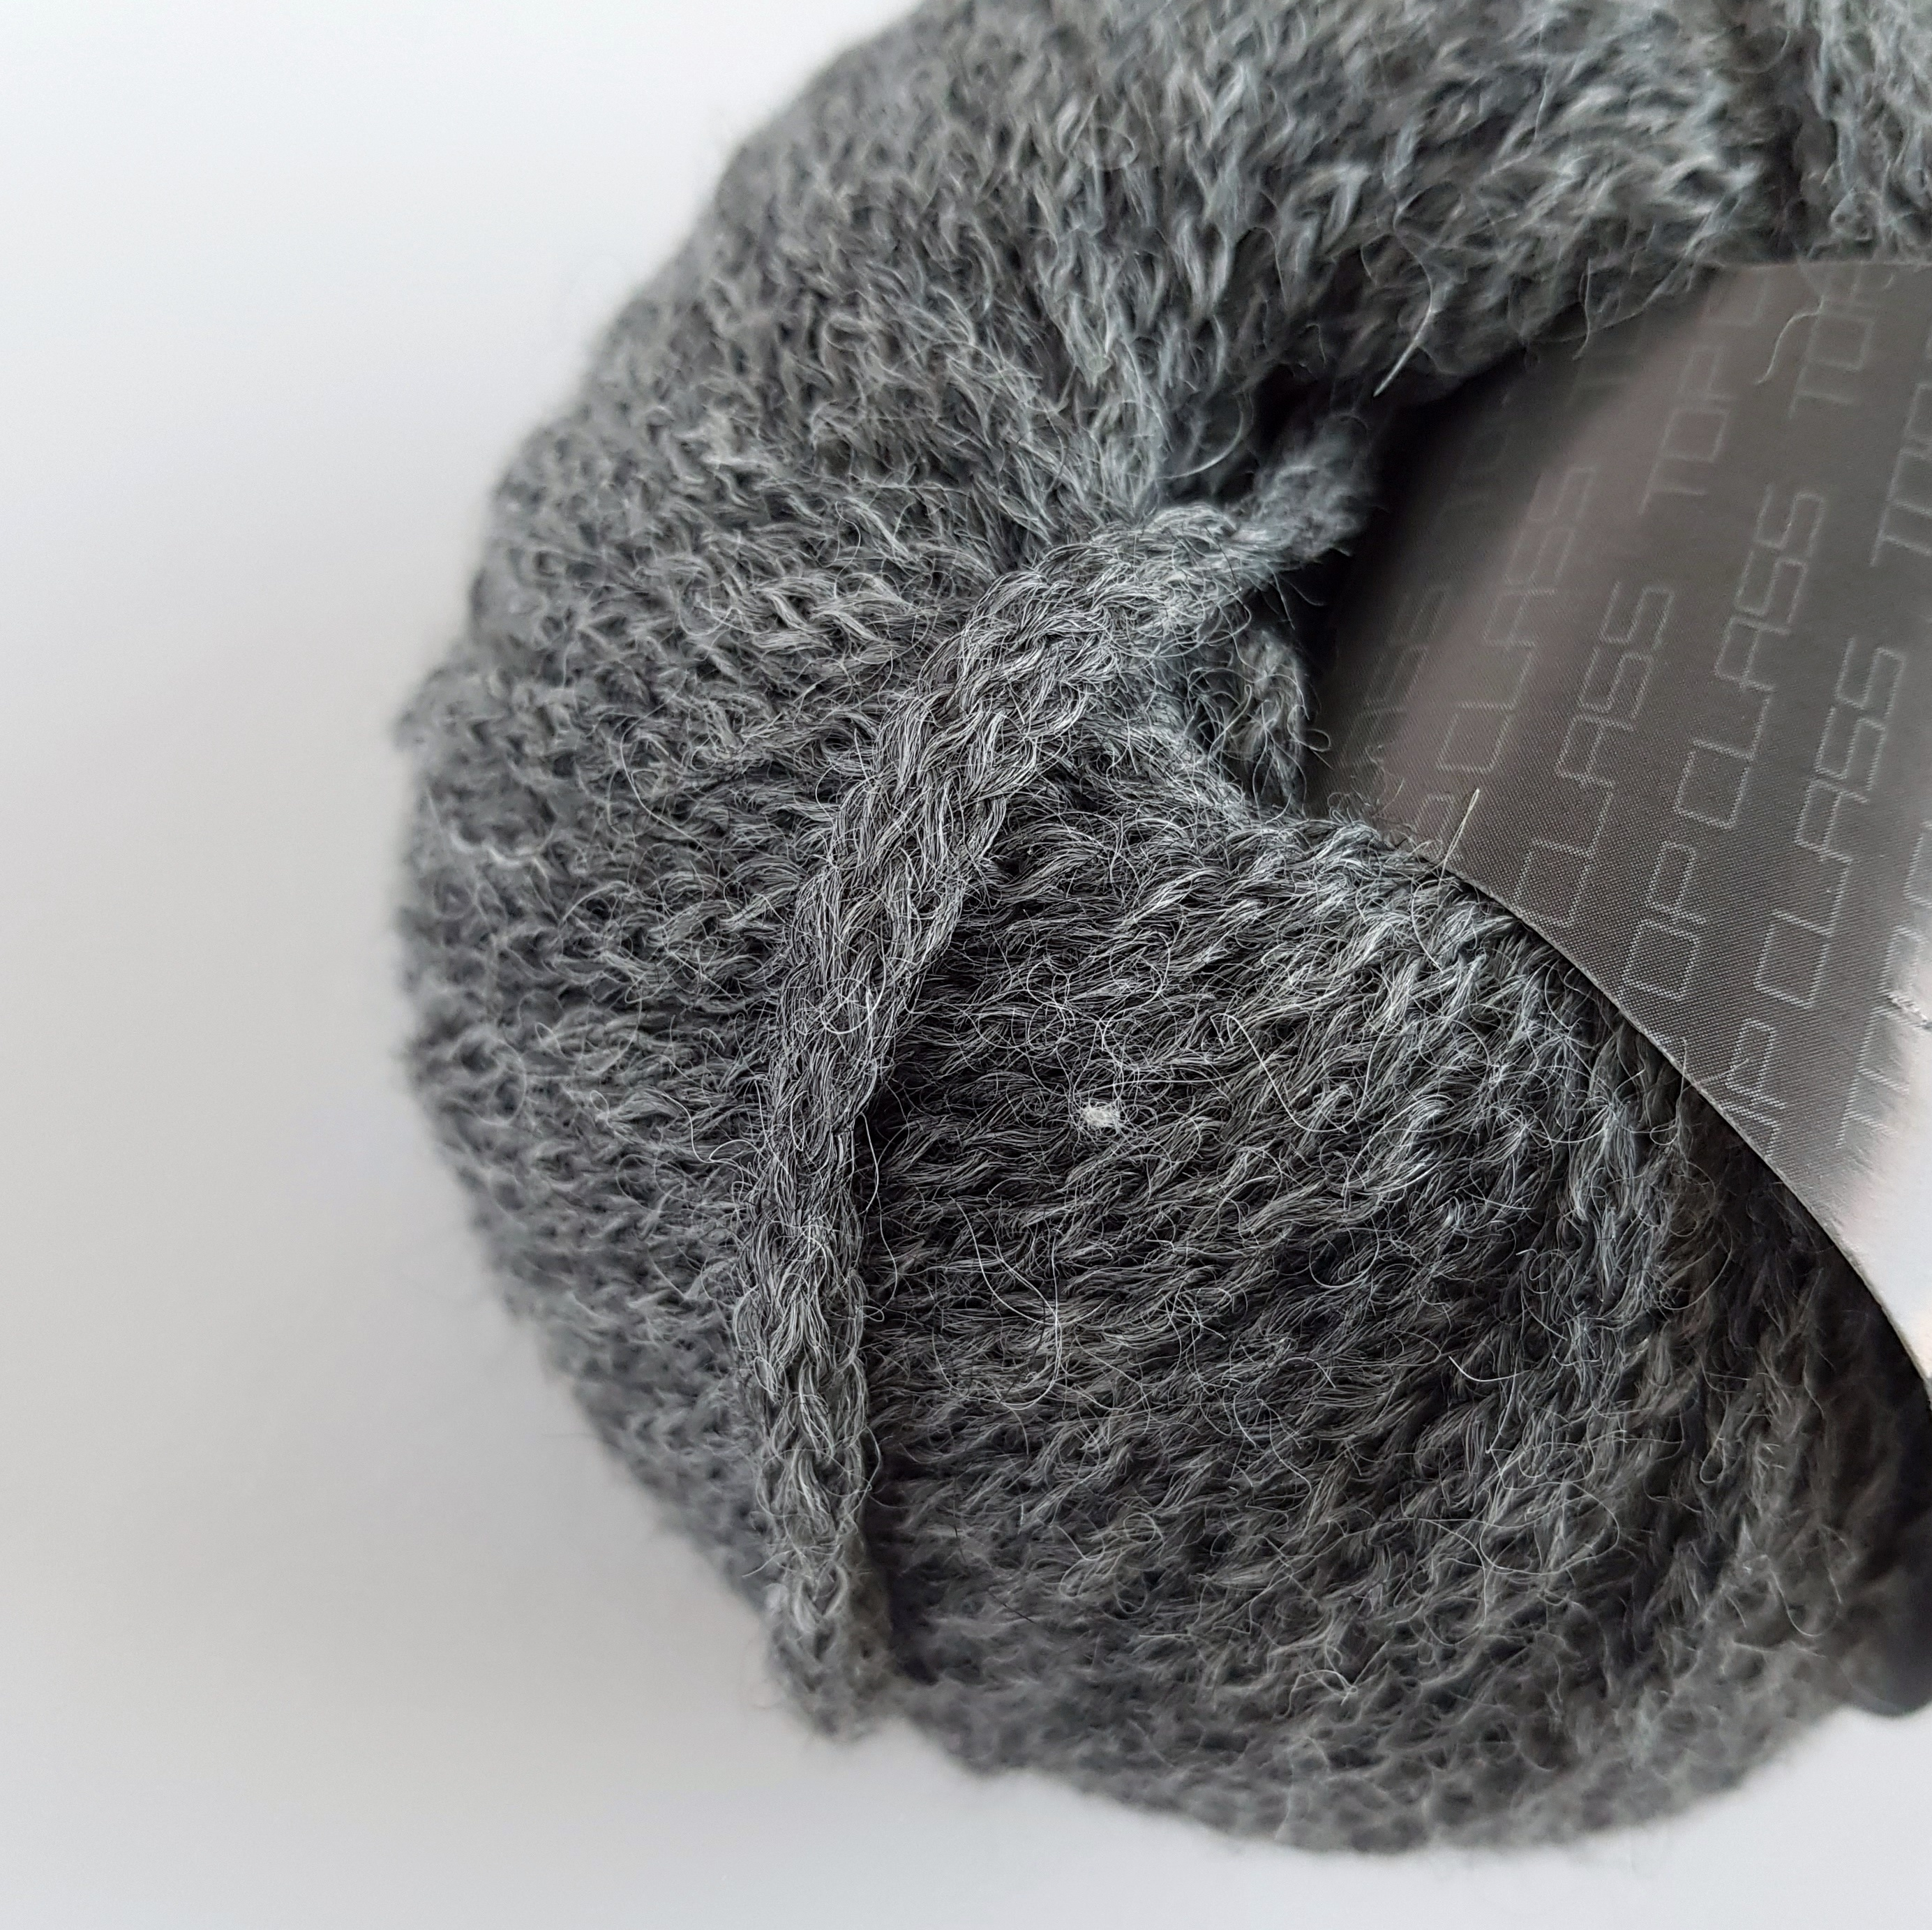 ПРЯЖА LANA GATTO ALPACA SUPERFINE (93% АЛЬПАКА, 7% НЕЙЛОН) #7612 GRIGIO MEDIO